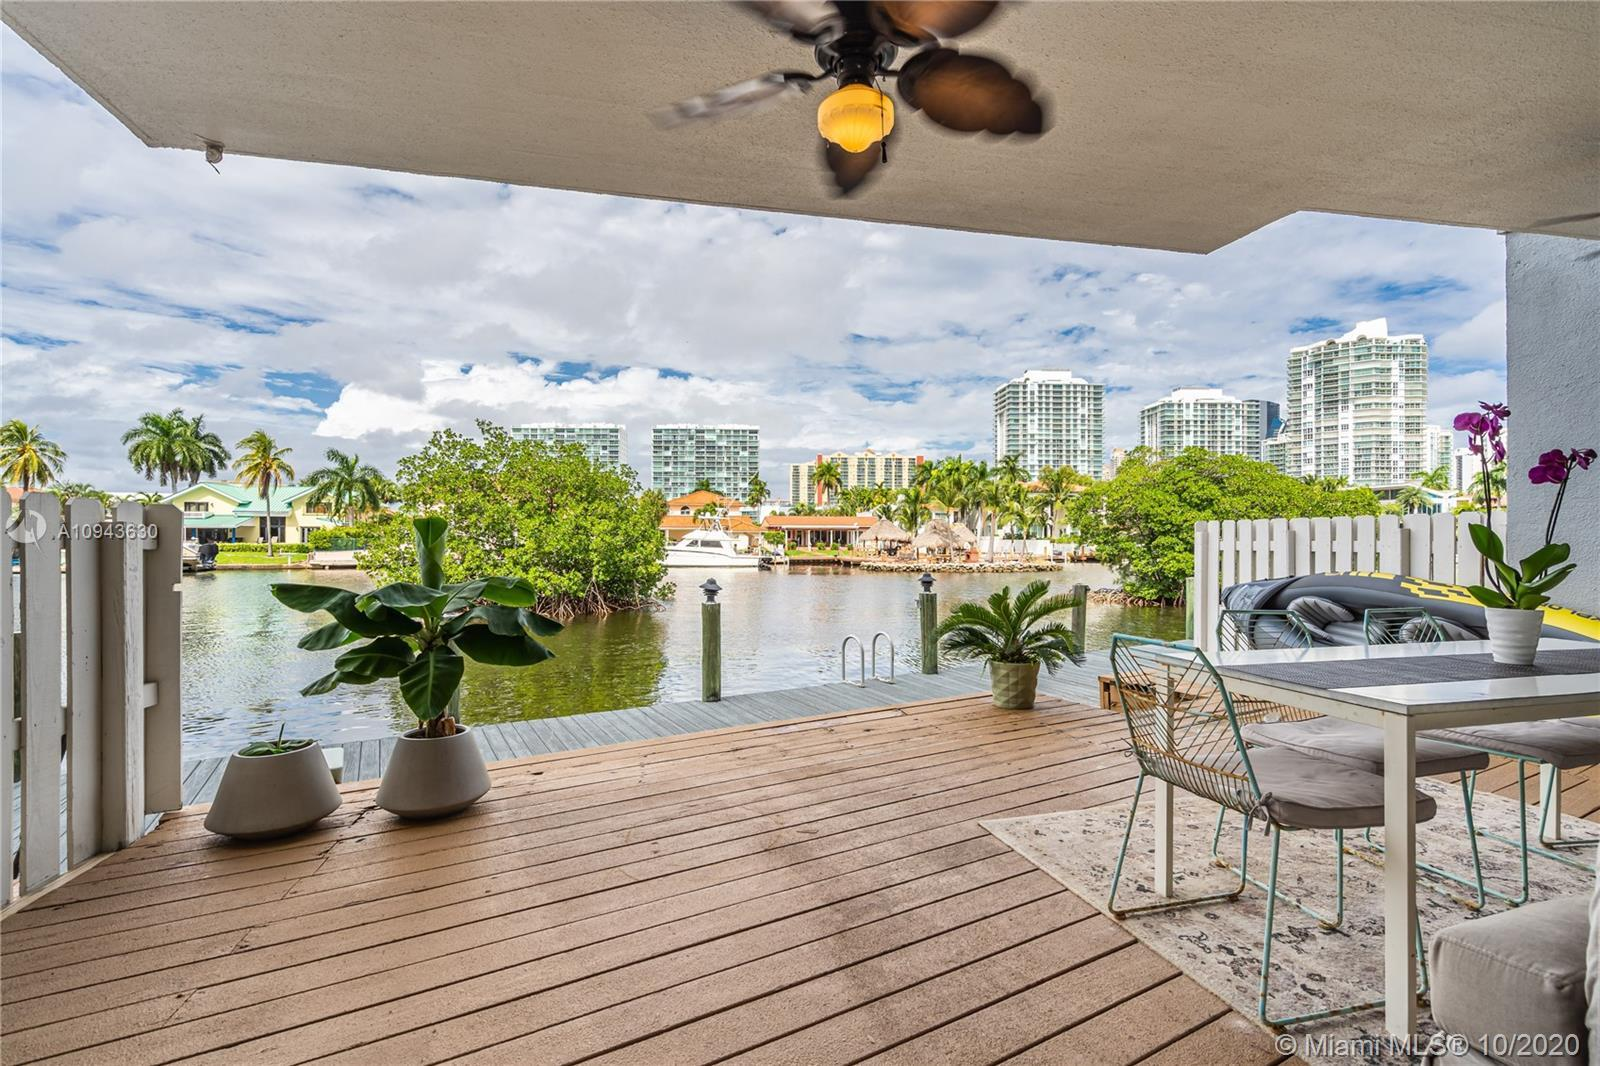 Extraordinary Waterfront Lifestyle featuring 2,425 sq. ft. Residence nestled on a Prestigious, Gated